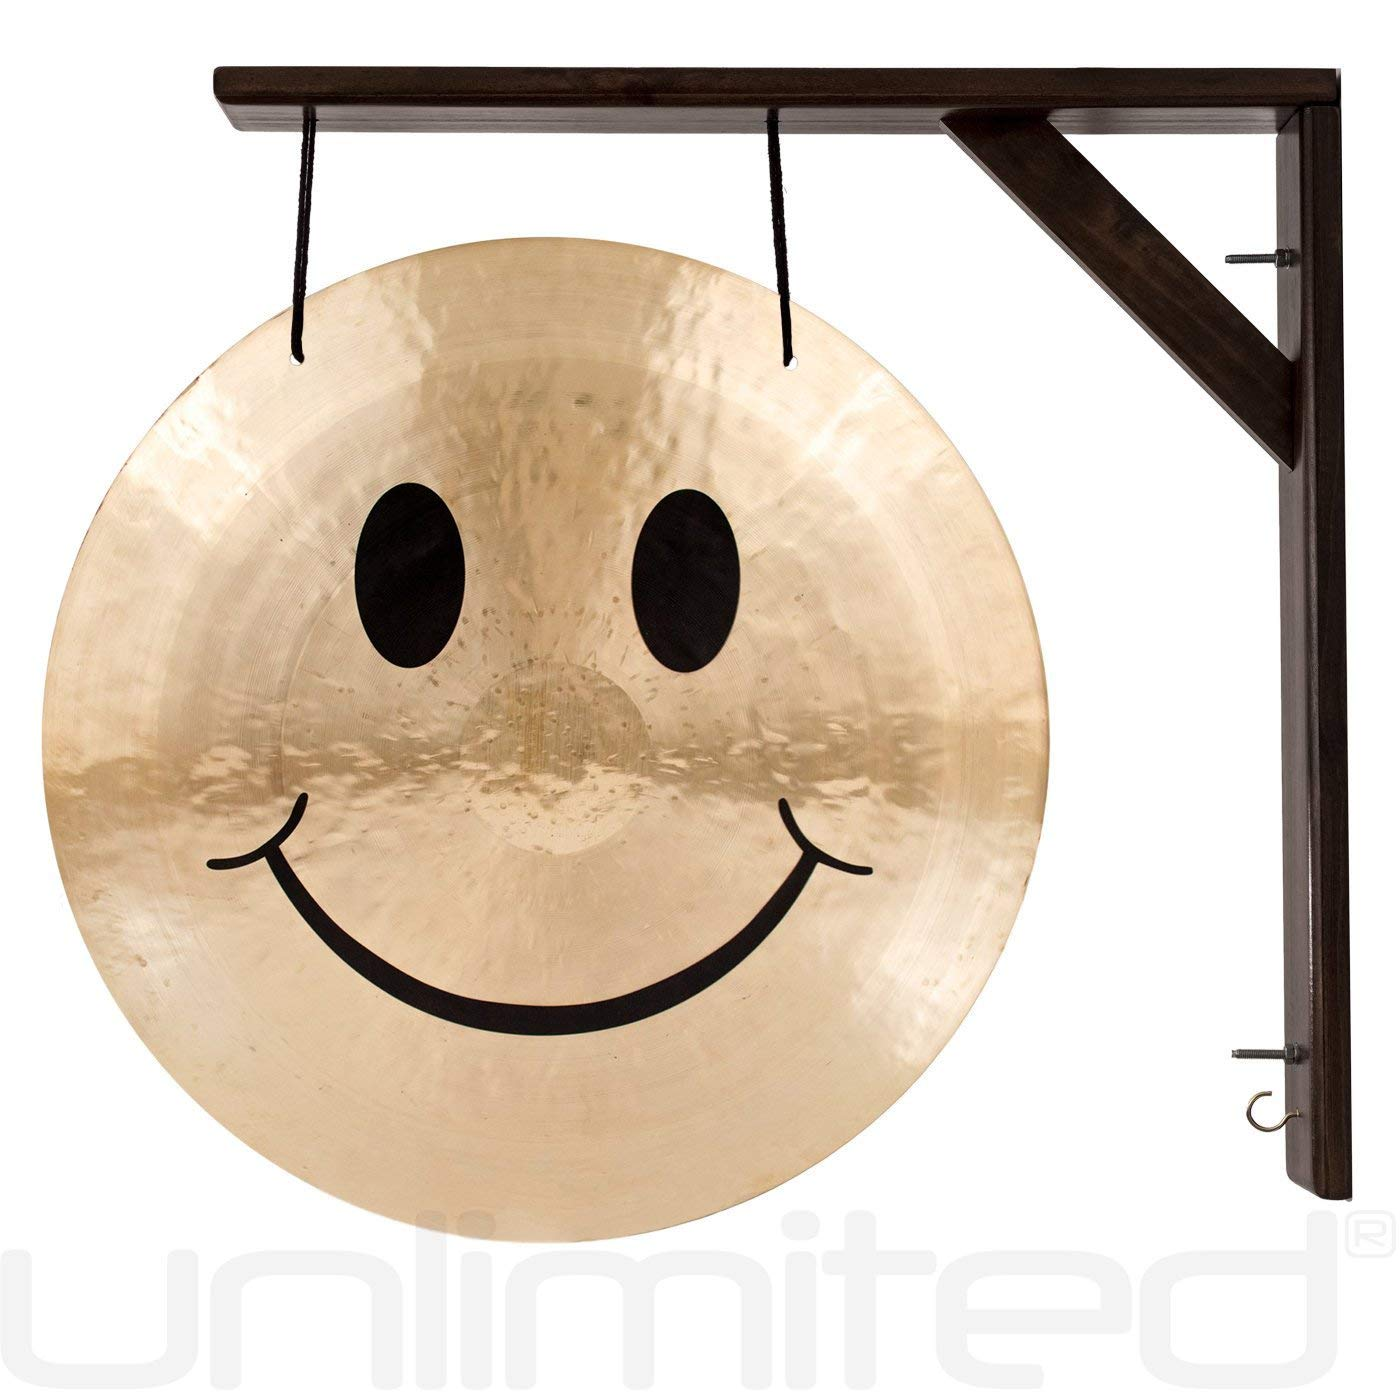 Unlimited 22'' Smiley Face Gong and Stand Combos